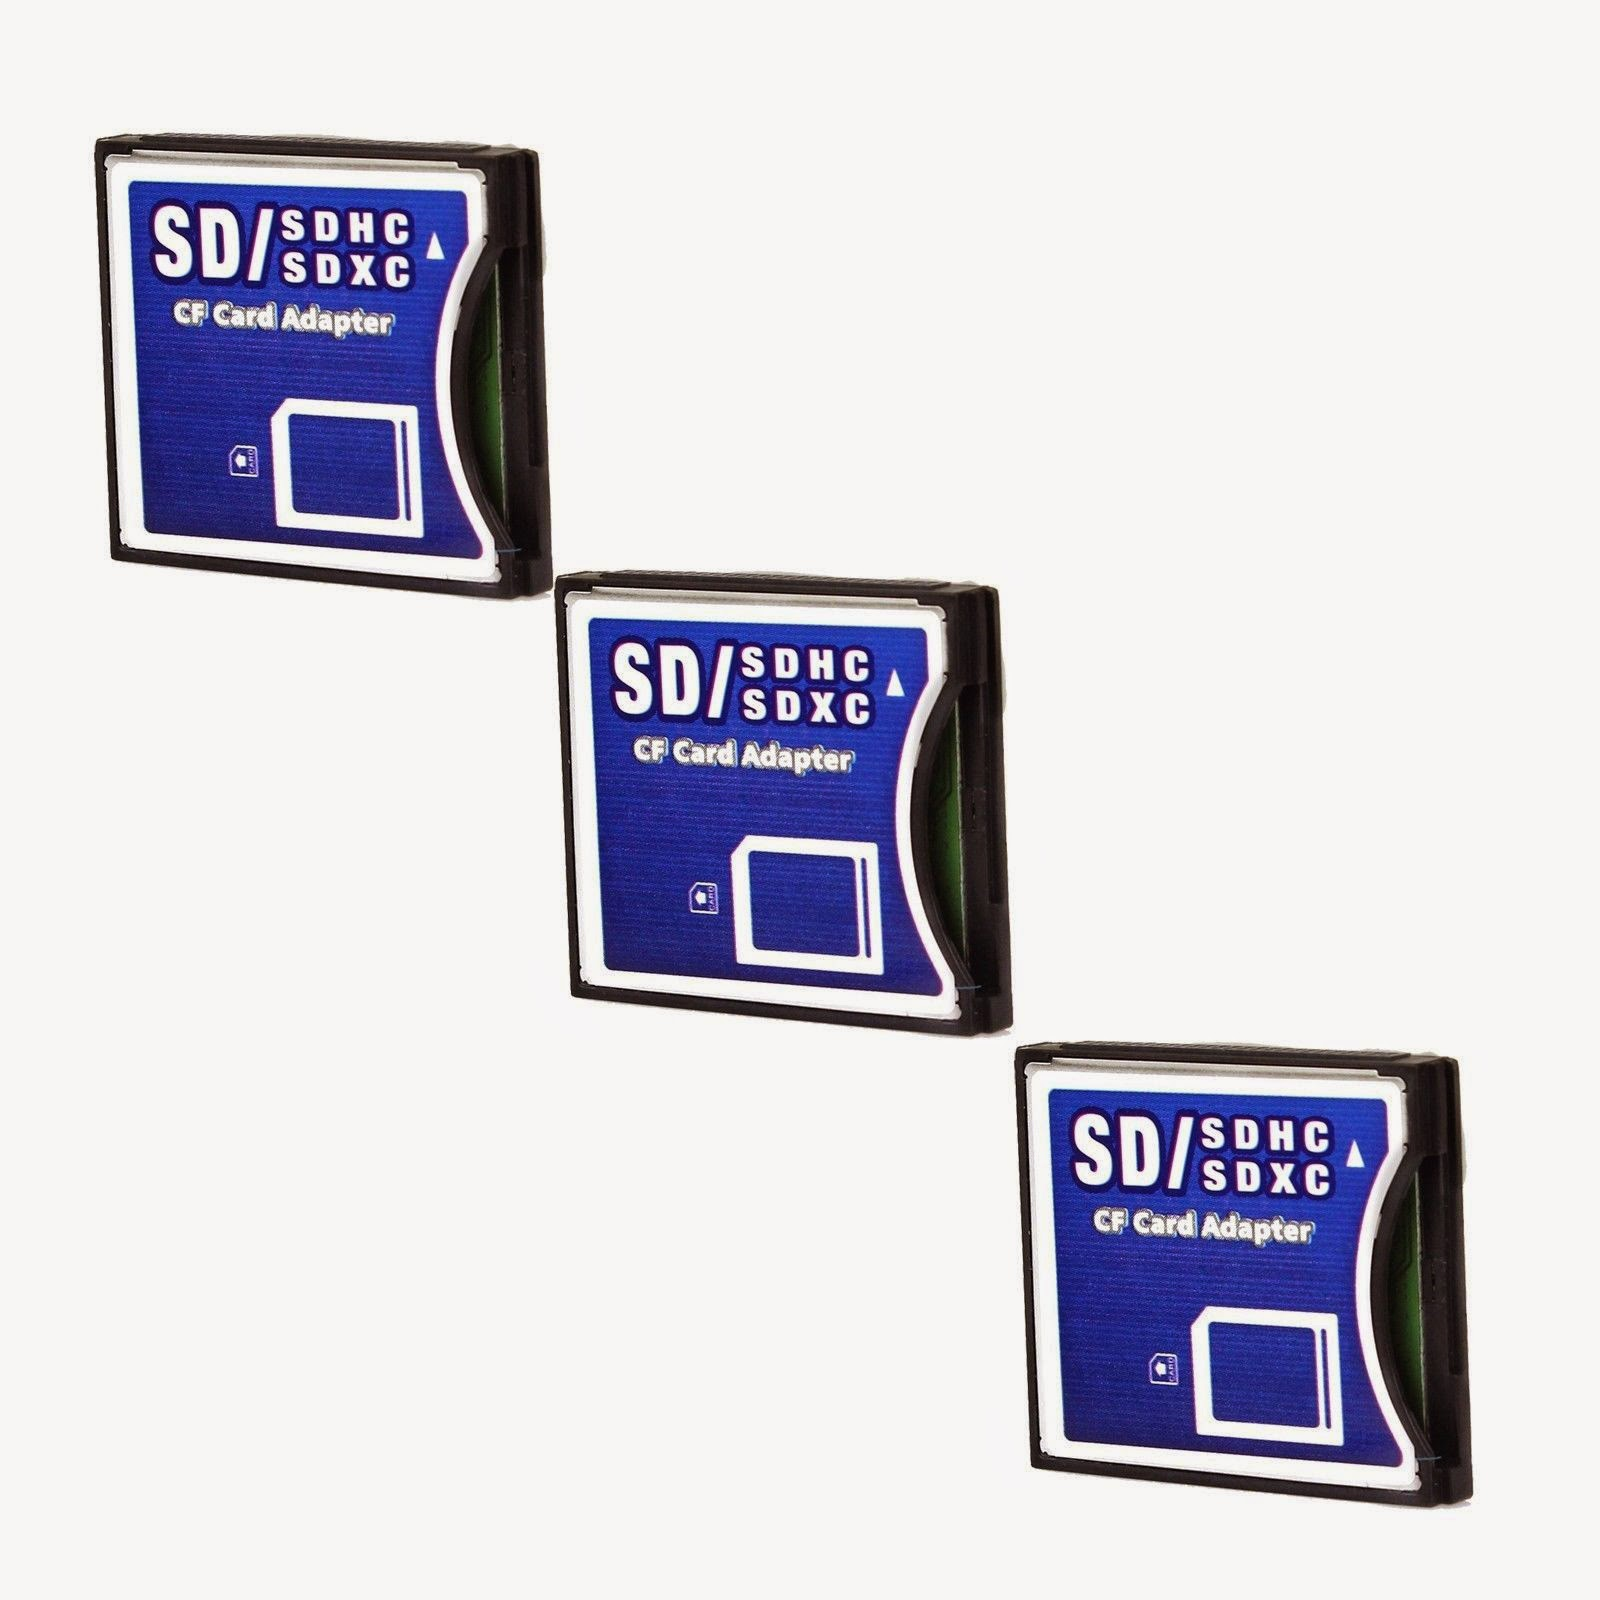 3 PCS WIFI SD/SDHC/SDXC To Compact Flash CF Type II Memory Card Adapter